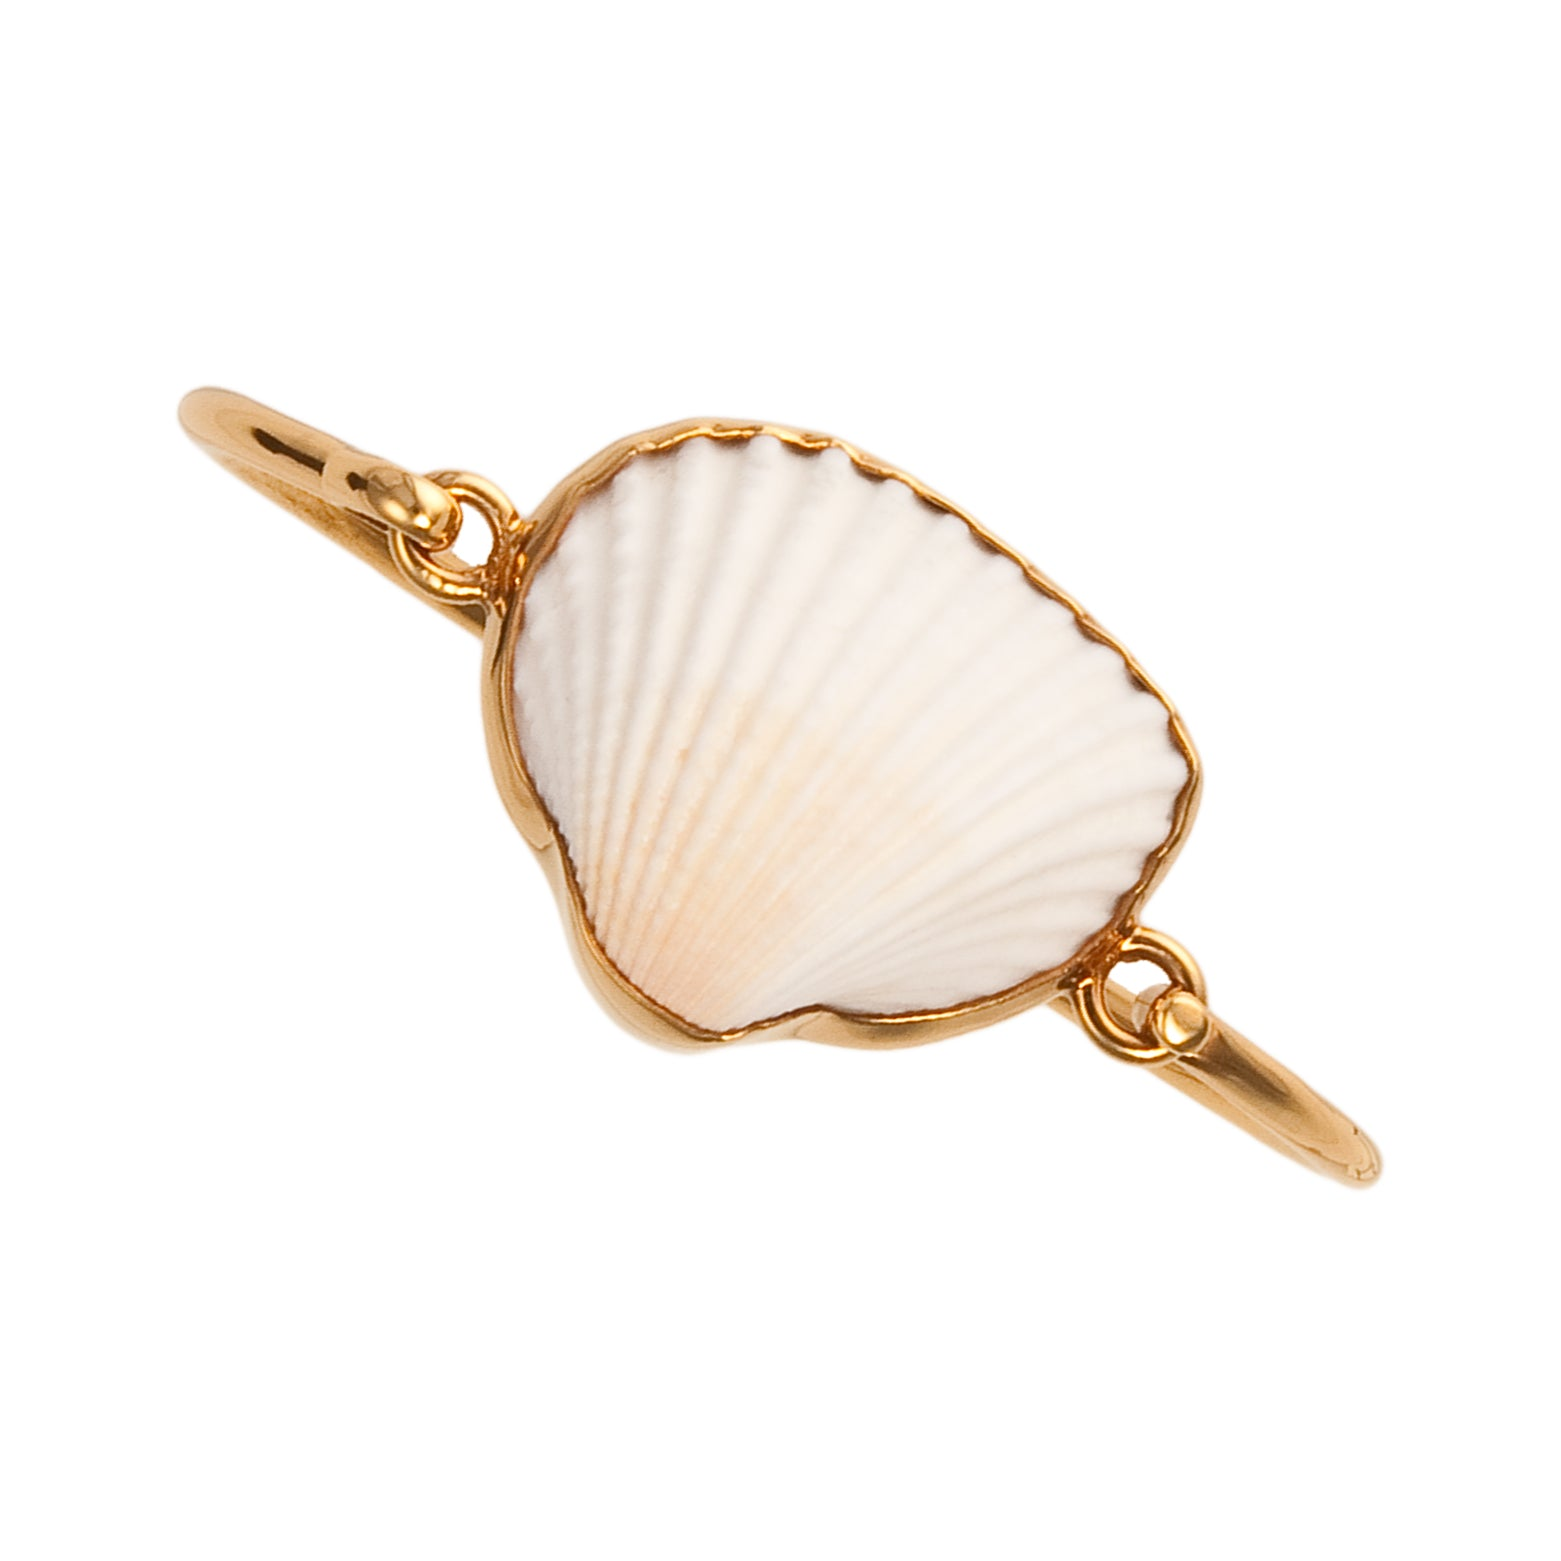 Alchemia Ark Shell Bangle | Charles Albert Jewelry